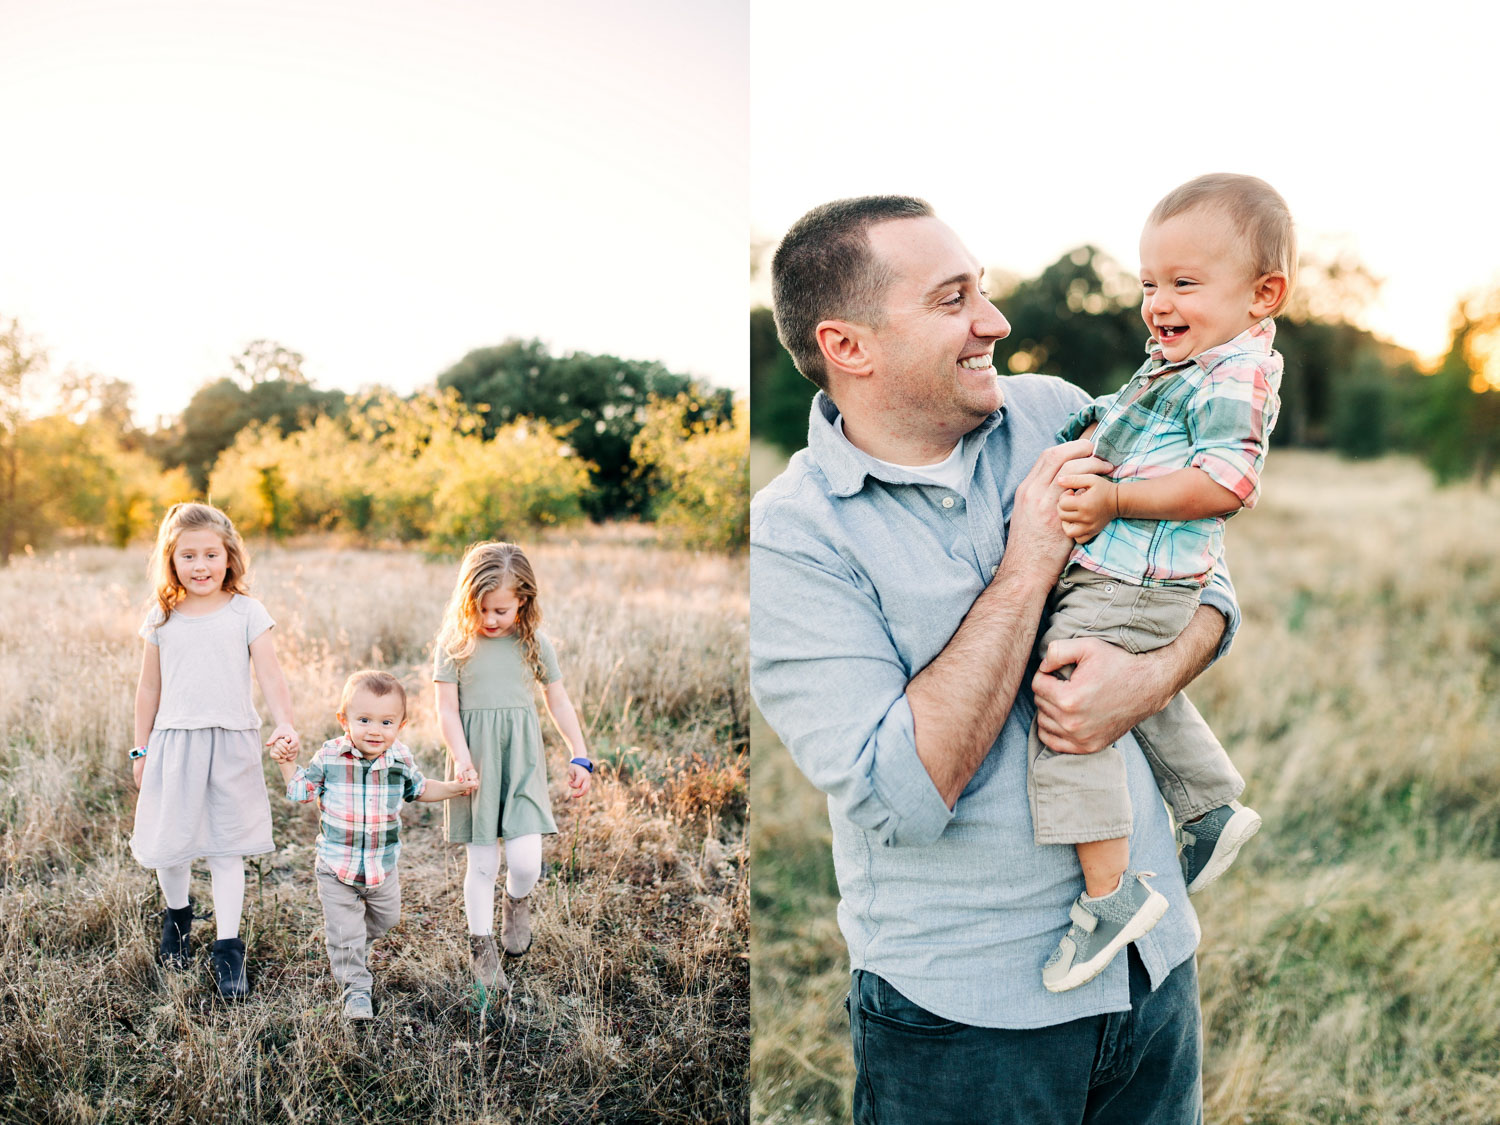 Three siblings walk together and a father playfully holds his son during a family photo session with Amy Wright Photography in Roseville, California.